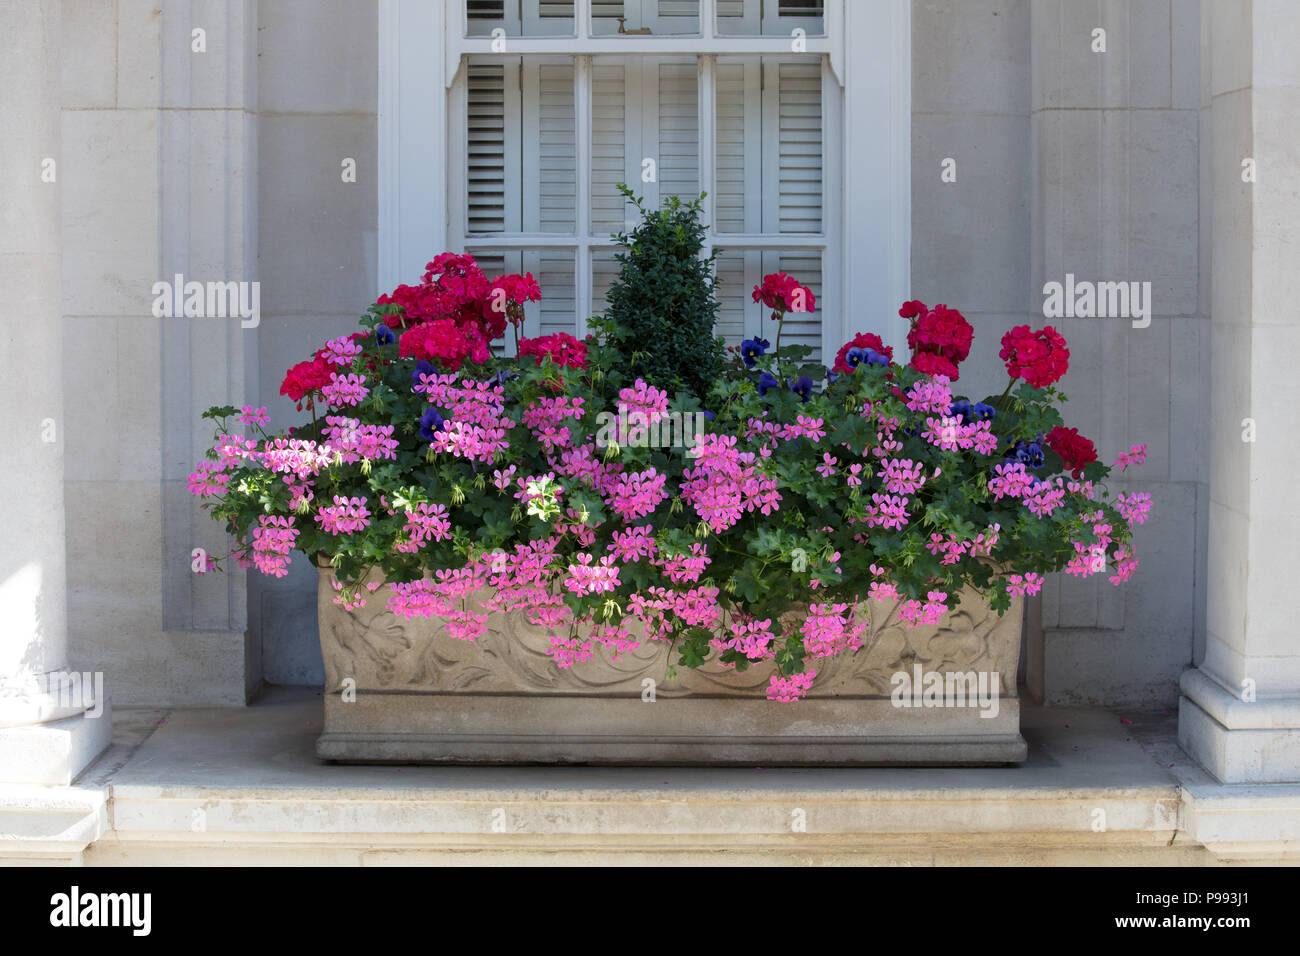 Small gardens: window box with summer flowers and plants in Mayfair, London - Stock Image